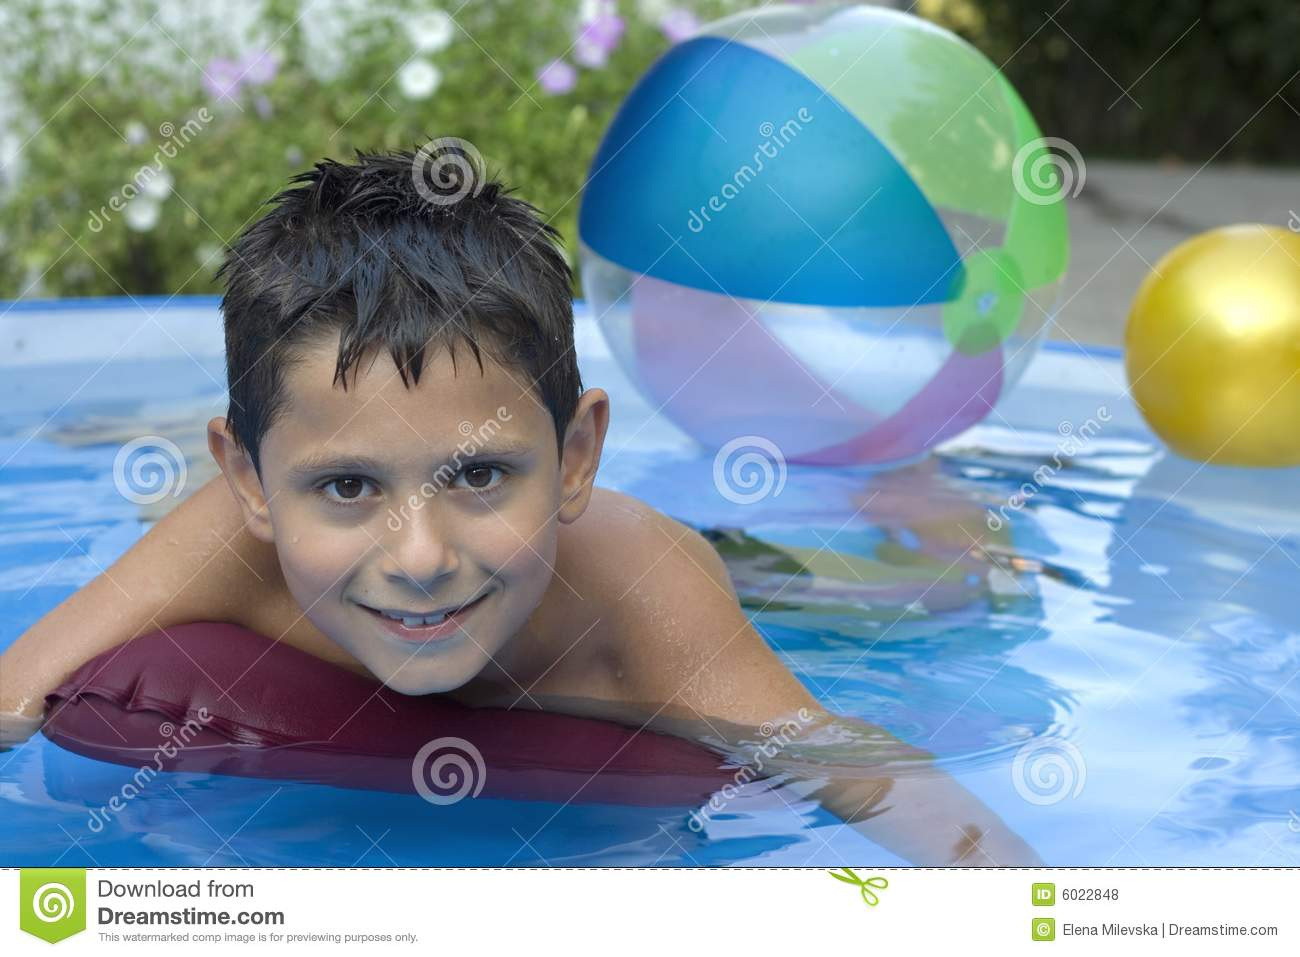 Cute young boy in pool royalty free stock photos image for Cute pool pictures